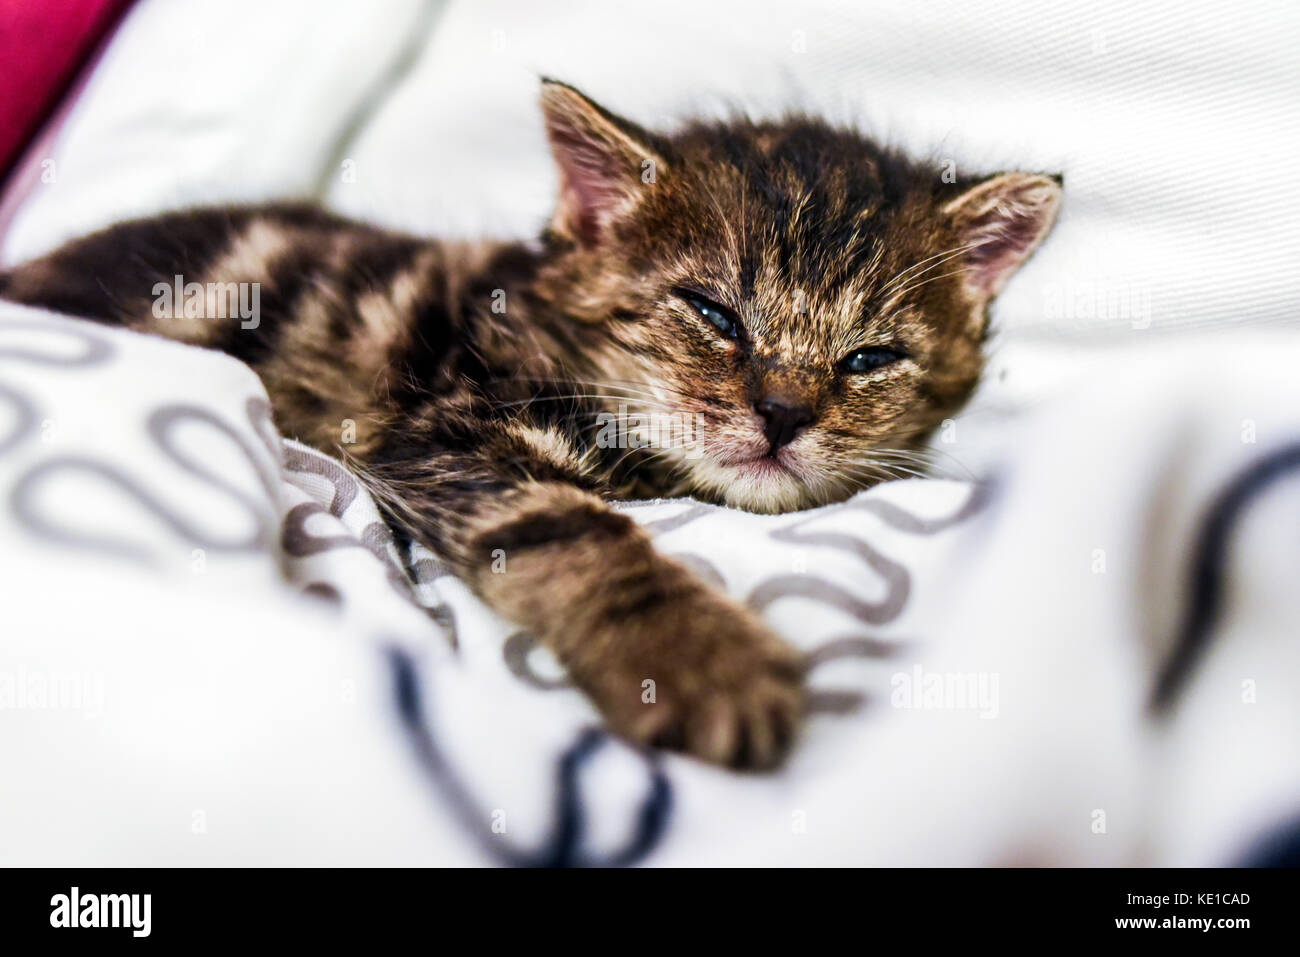 A cute little kitten lying in a blanket at home. Stock Photo